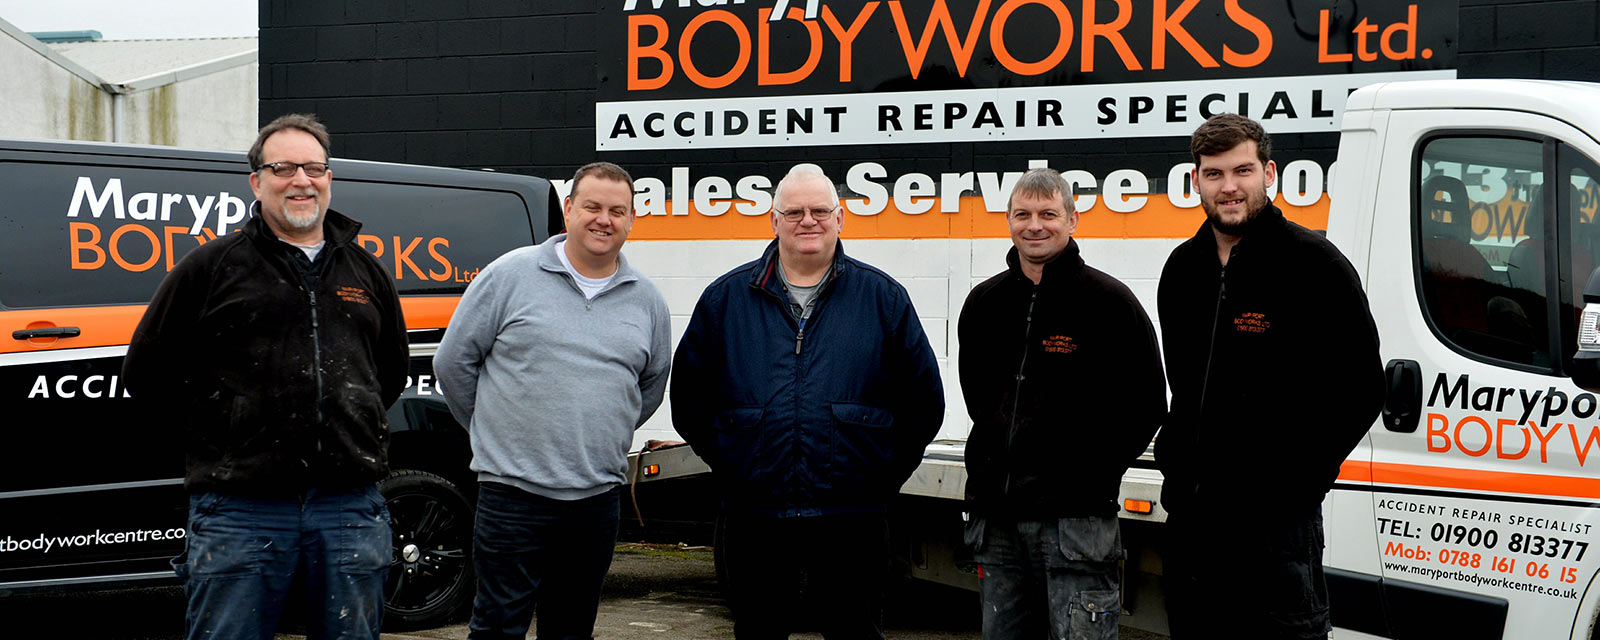 The Team at Maryport Bodyworks Ltd